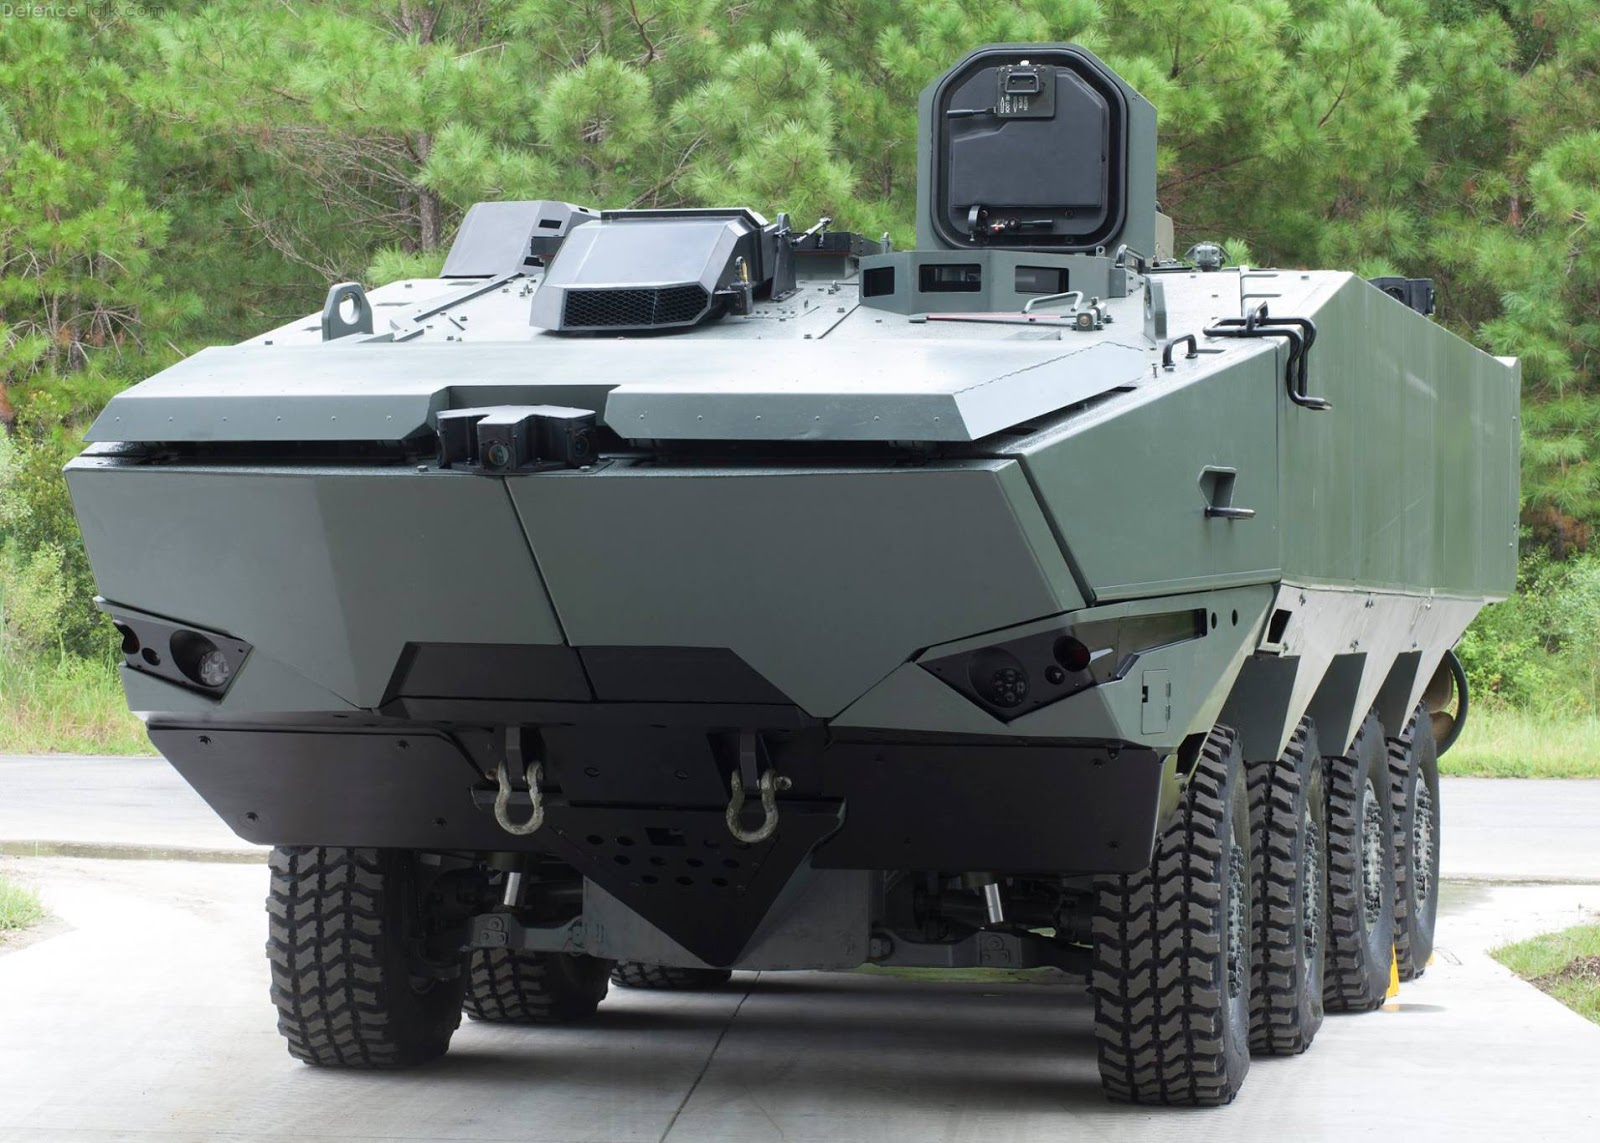 Terrex 2 Wheeled Armoured Vehicle